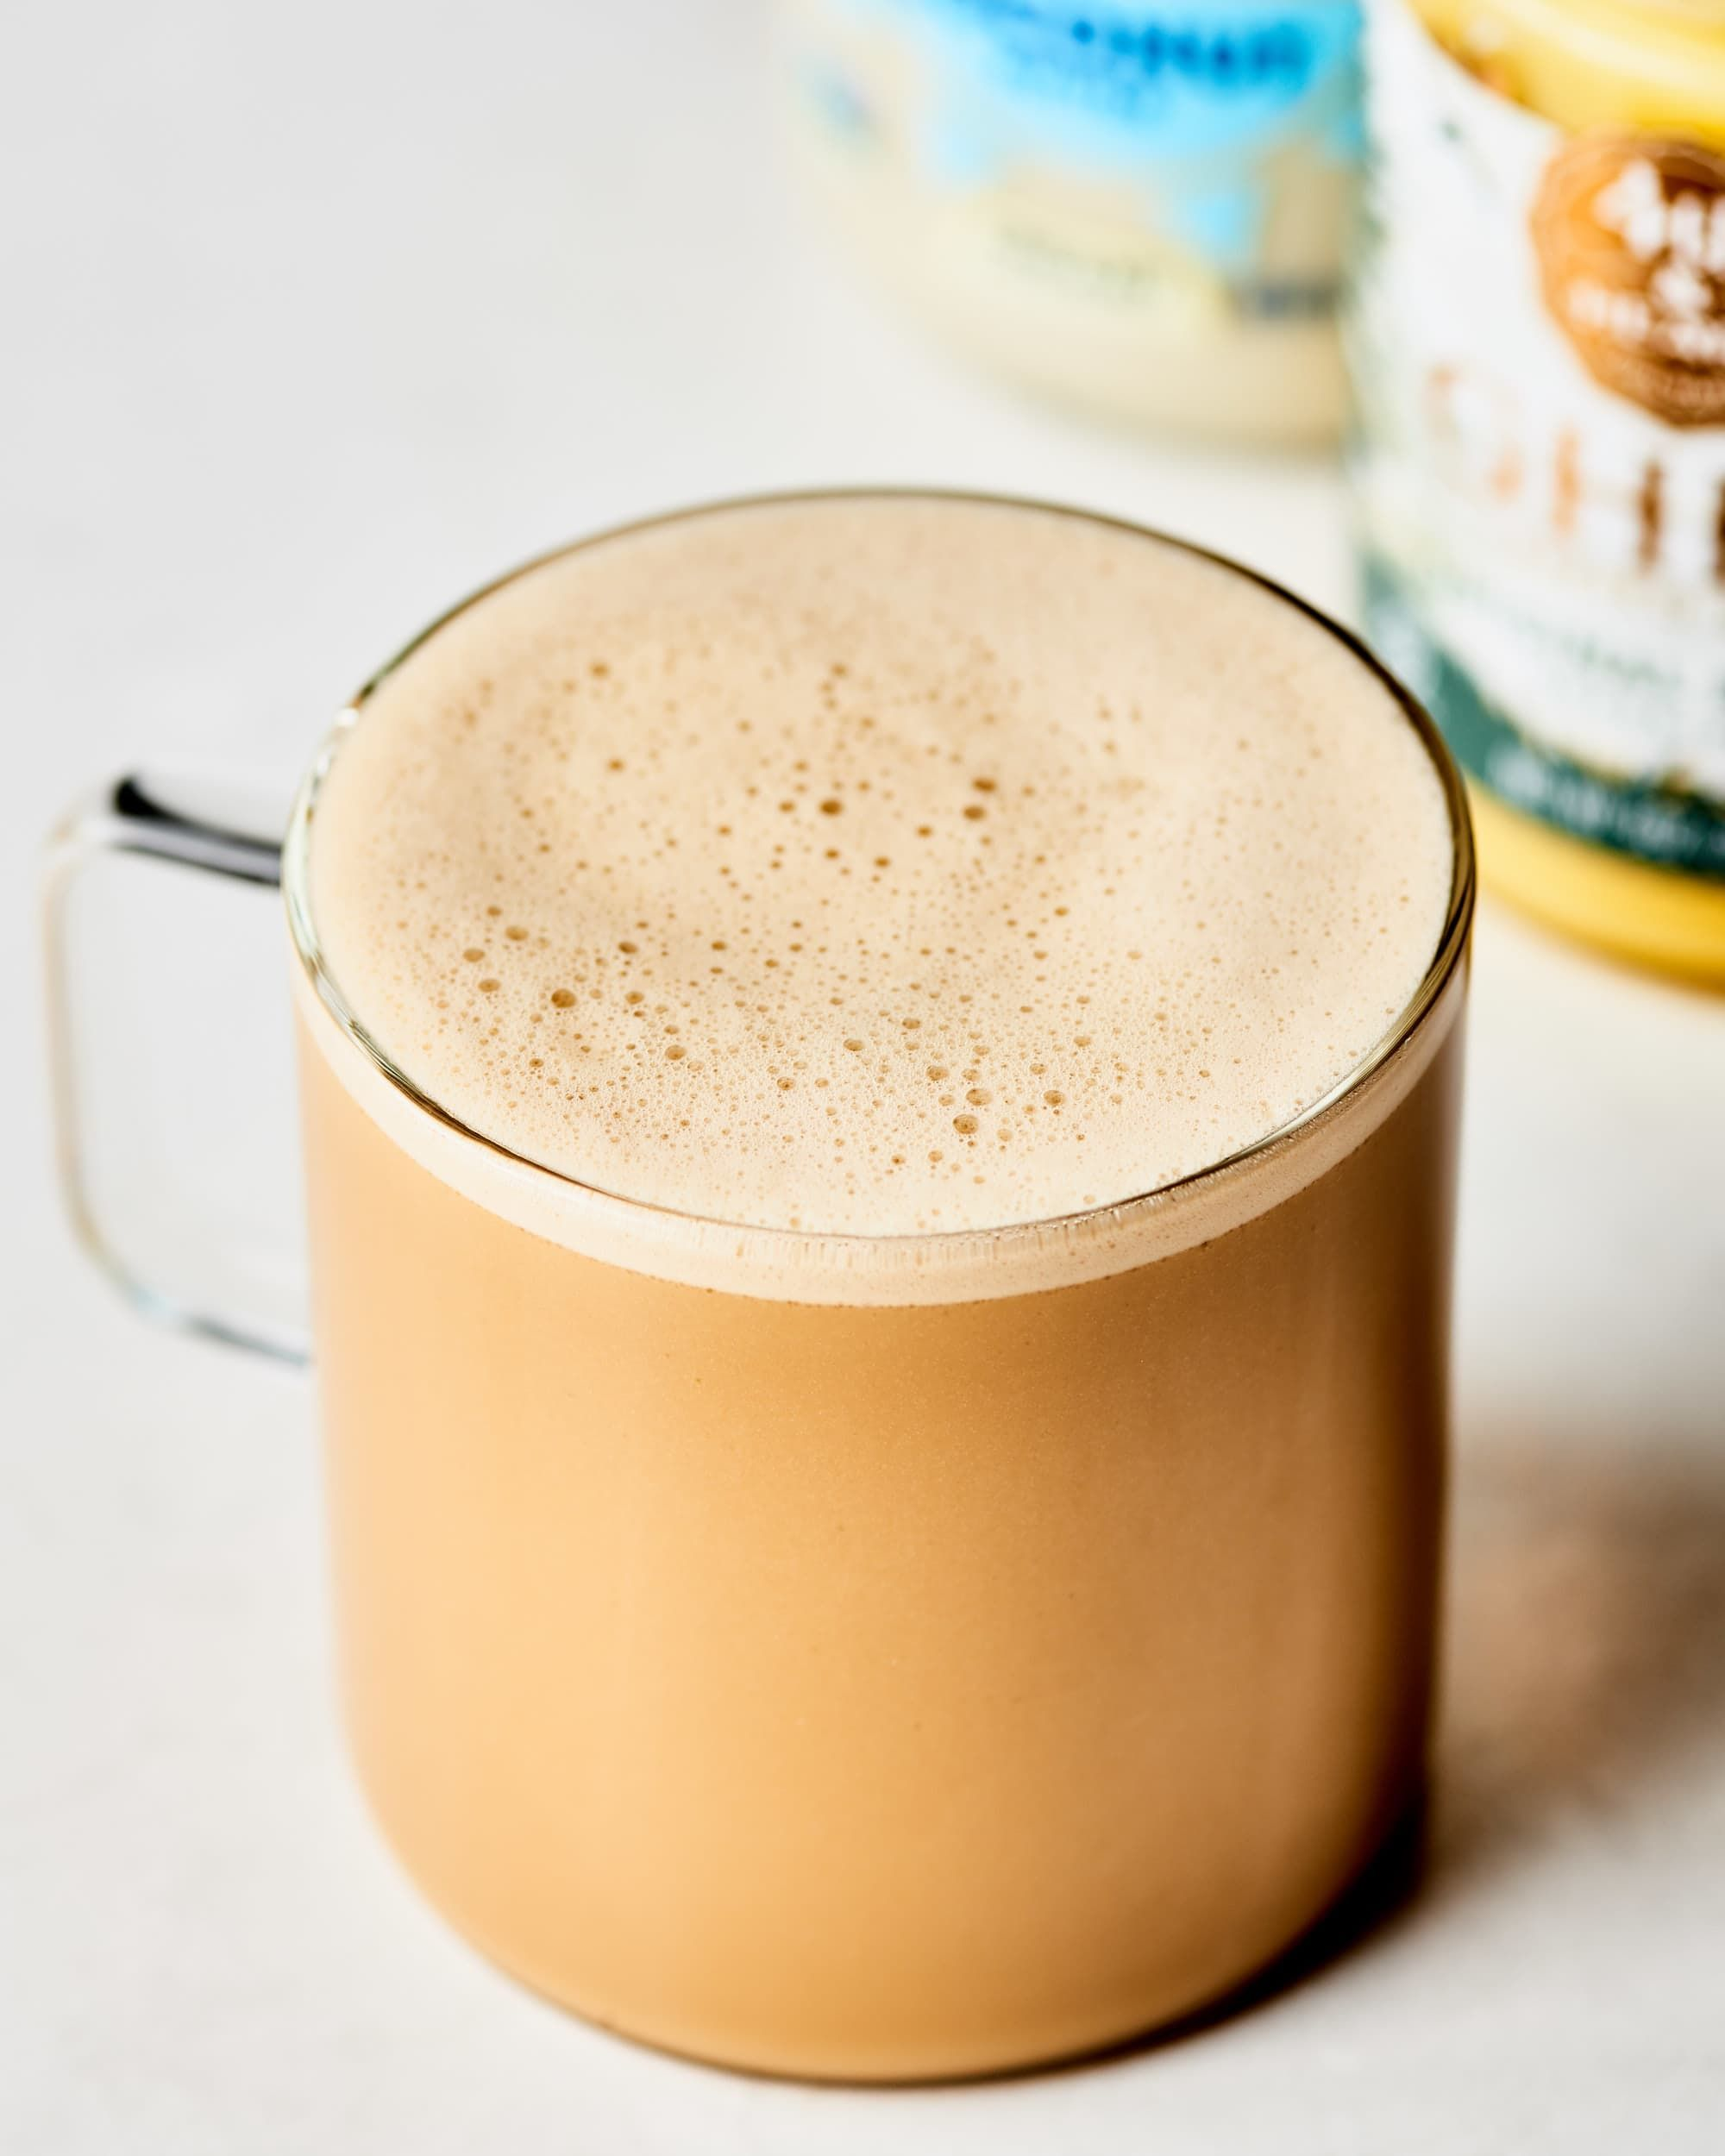 Here's How to Make Whole30 Coffee Creamer with Just Two